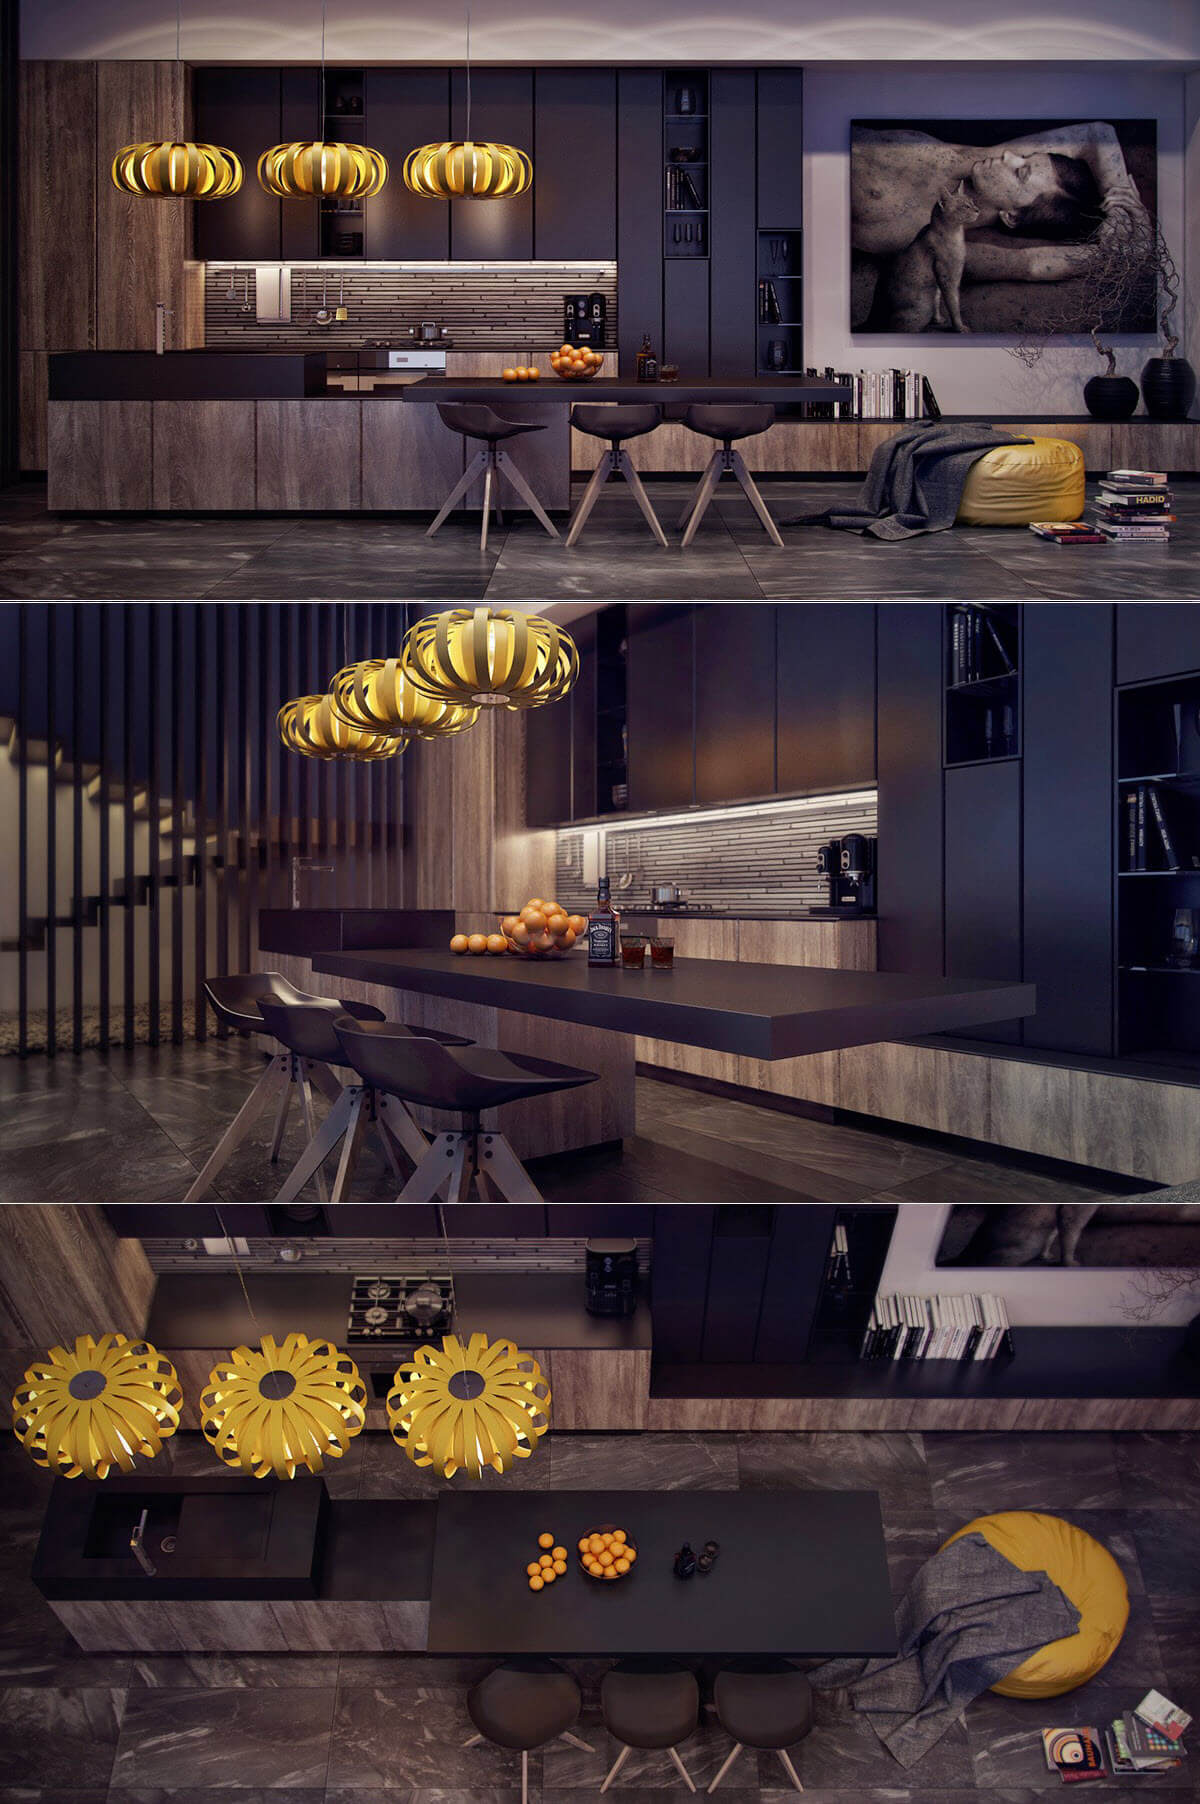 Kitchen design with style and art